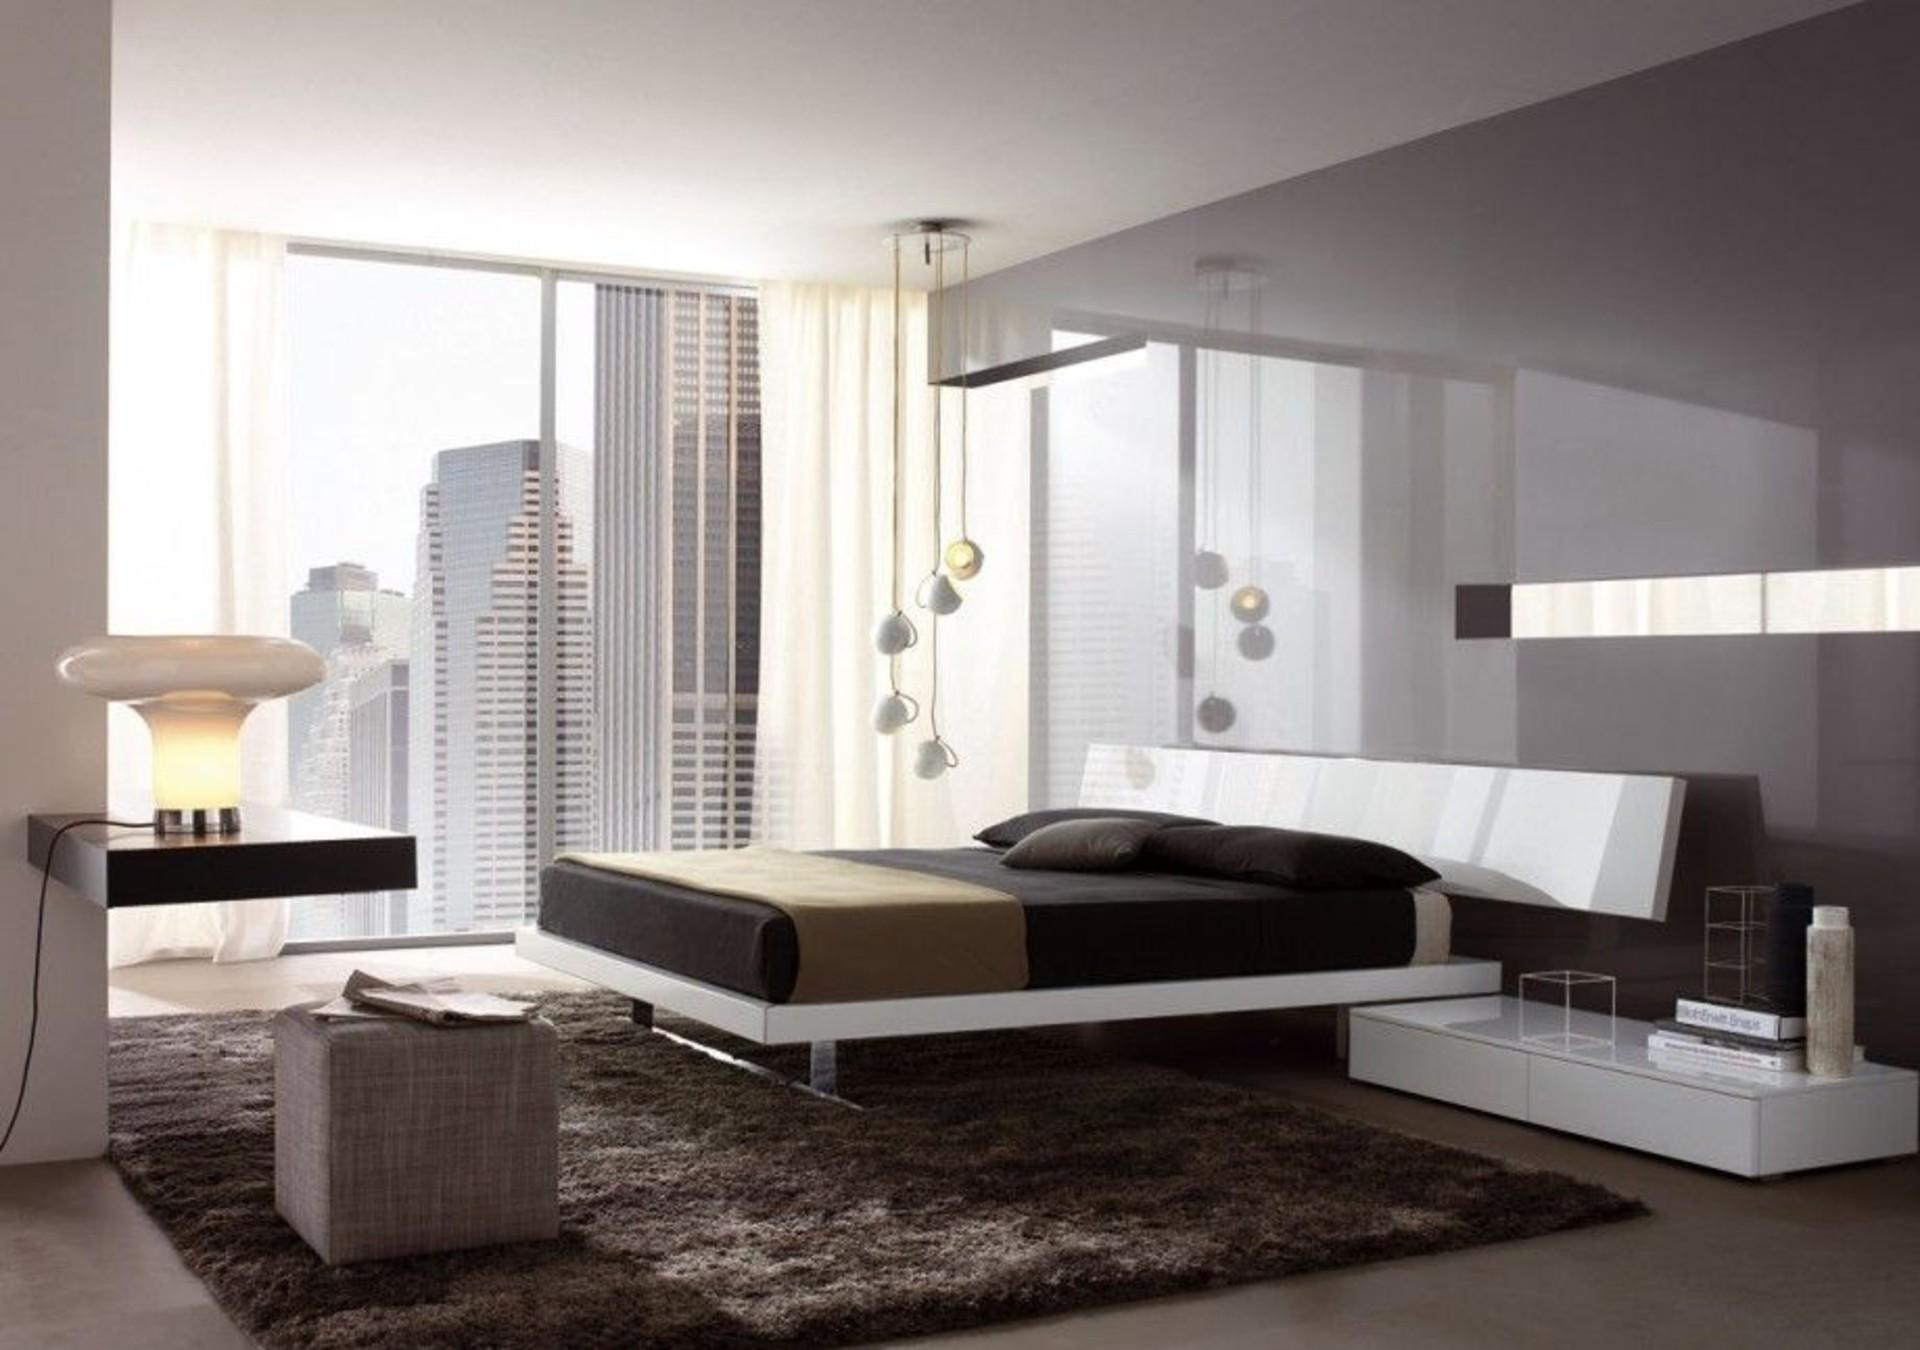 Bedroom Hanging Bed Designs Floated Ideas